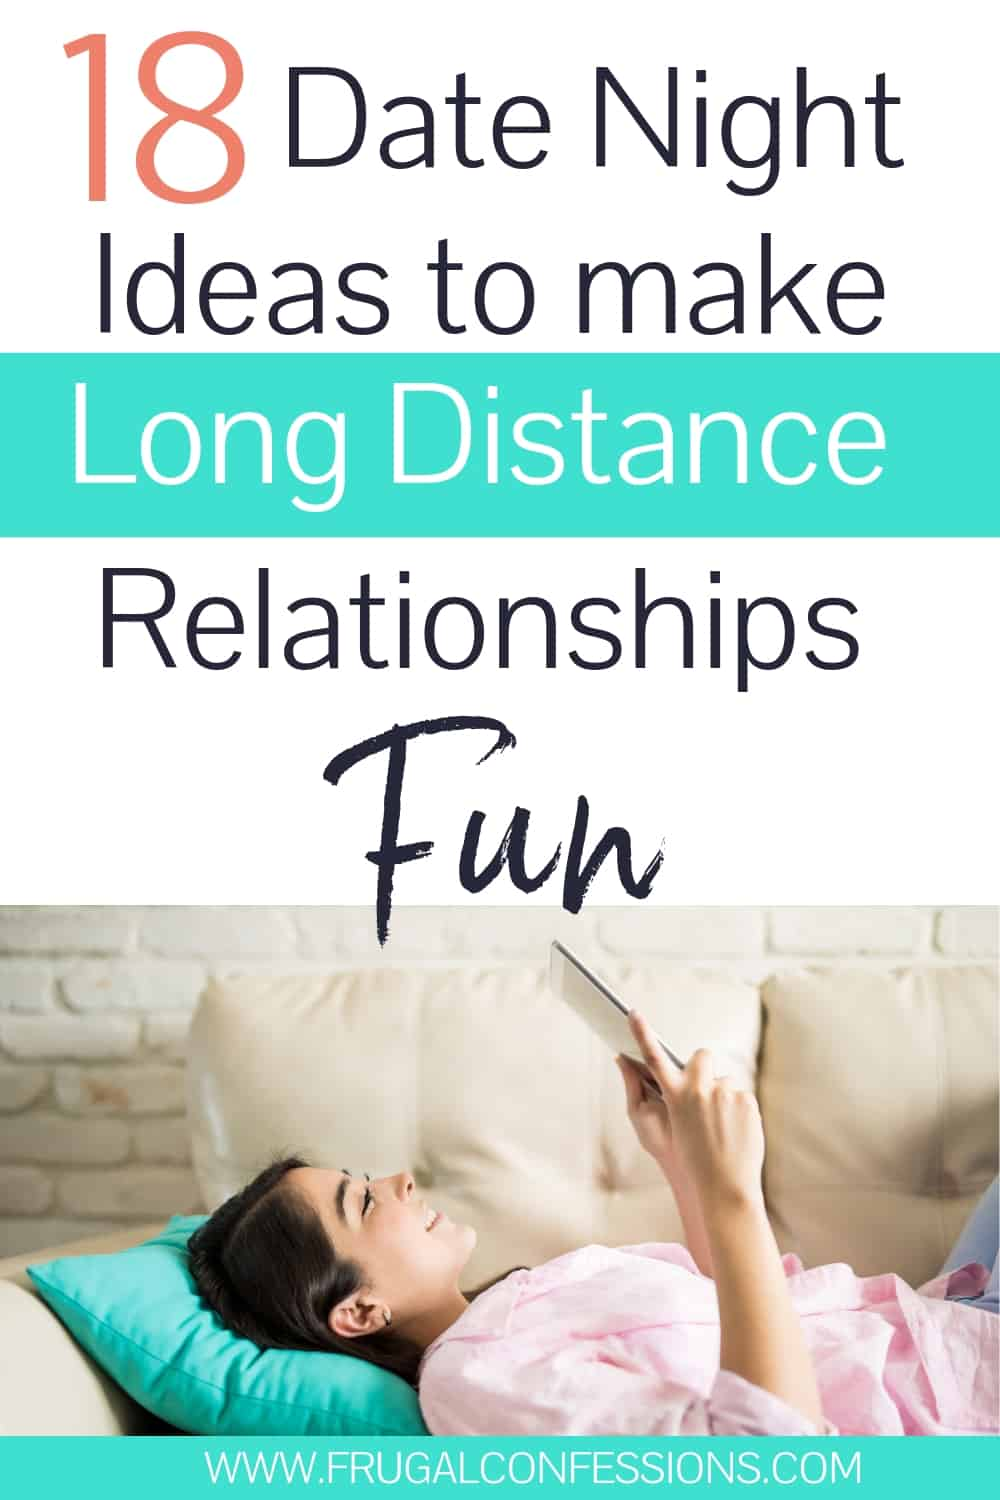 Dating ideas for long distance couples